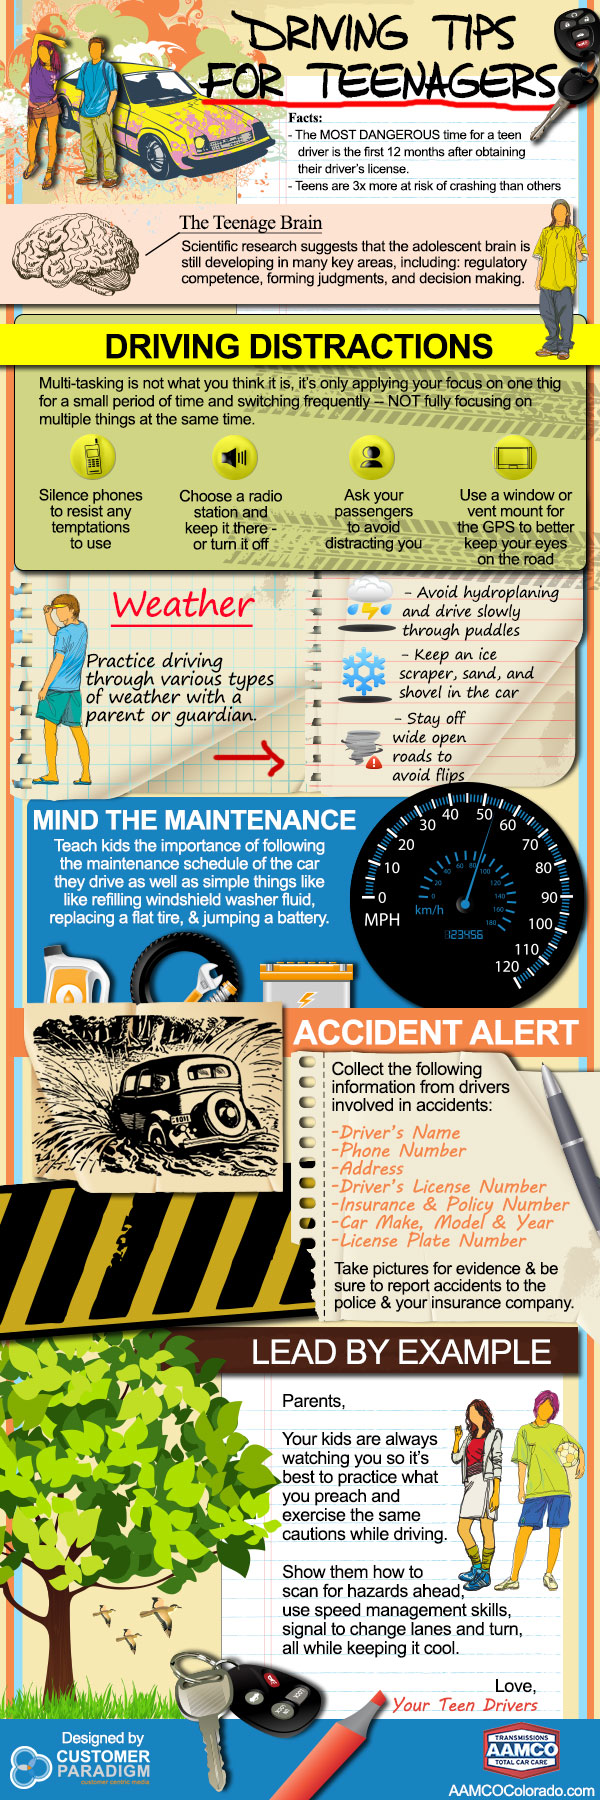 Infographic on Driving Tips for Teenagers - AAMCO Colorado